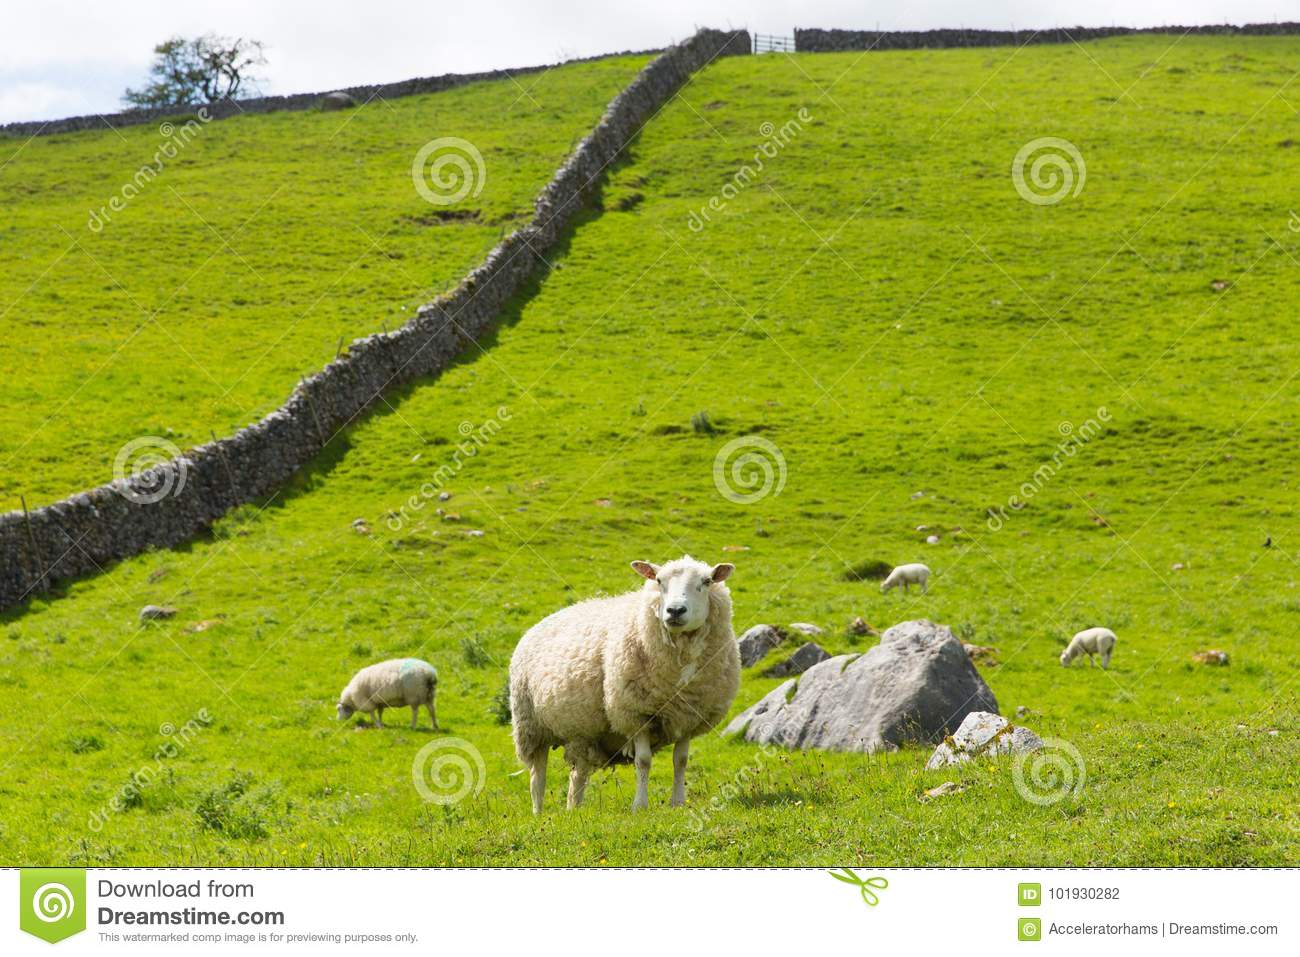 Sheep and dry stone wall in Yorkshire Dales England UK